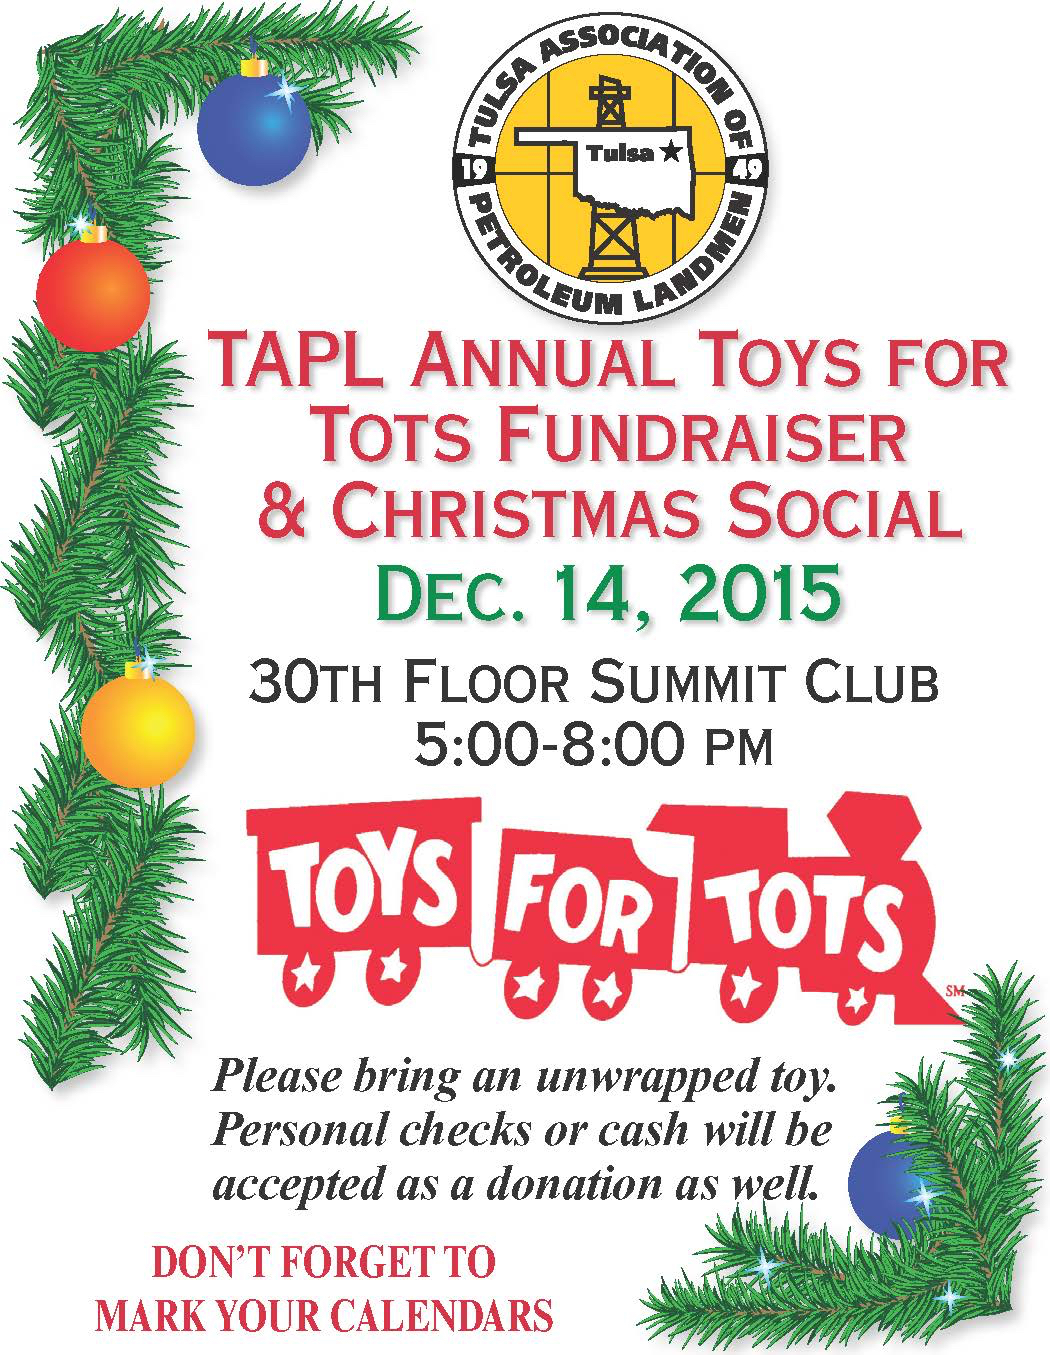 Toys For Tots Flyers Printable : Event toys for tots christmas social